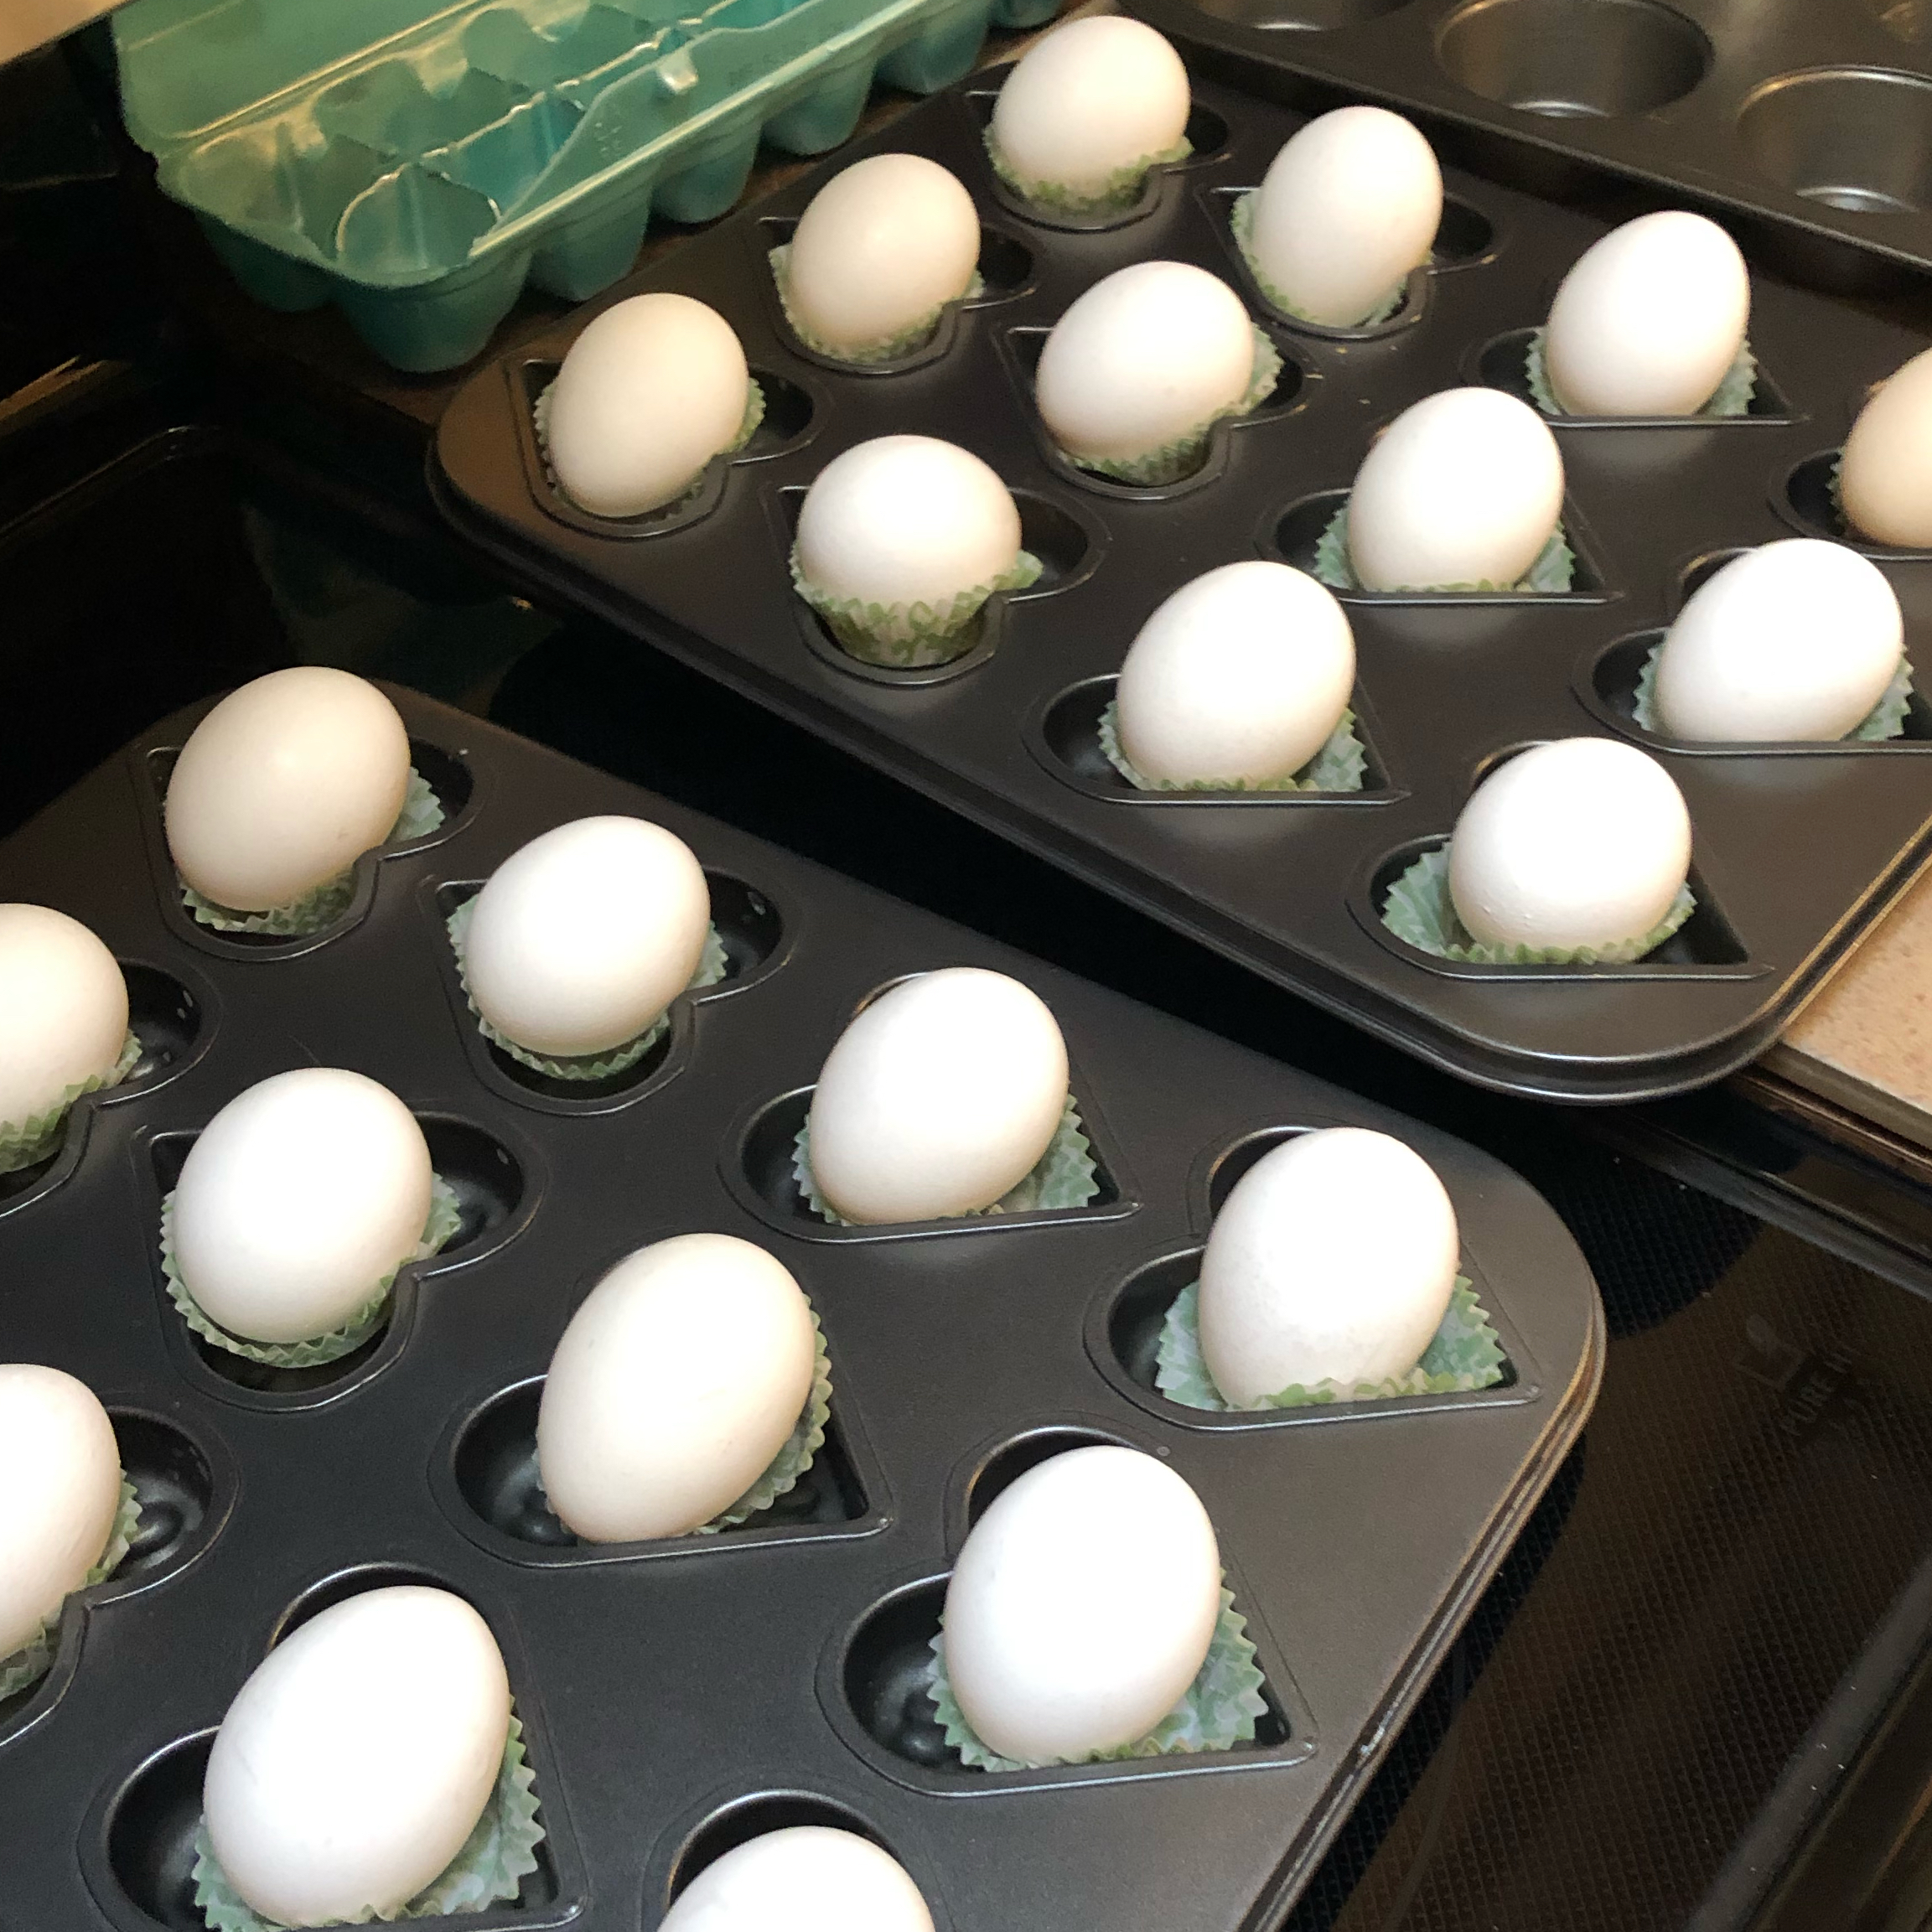 Hard Boiled Eggs in the Oven